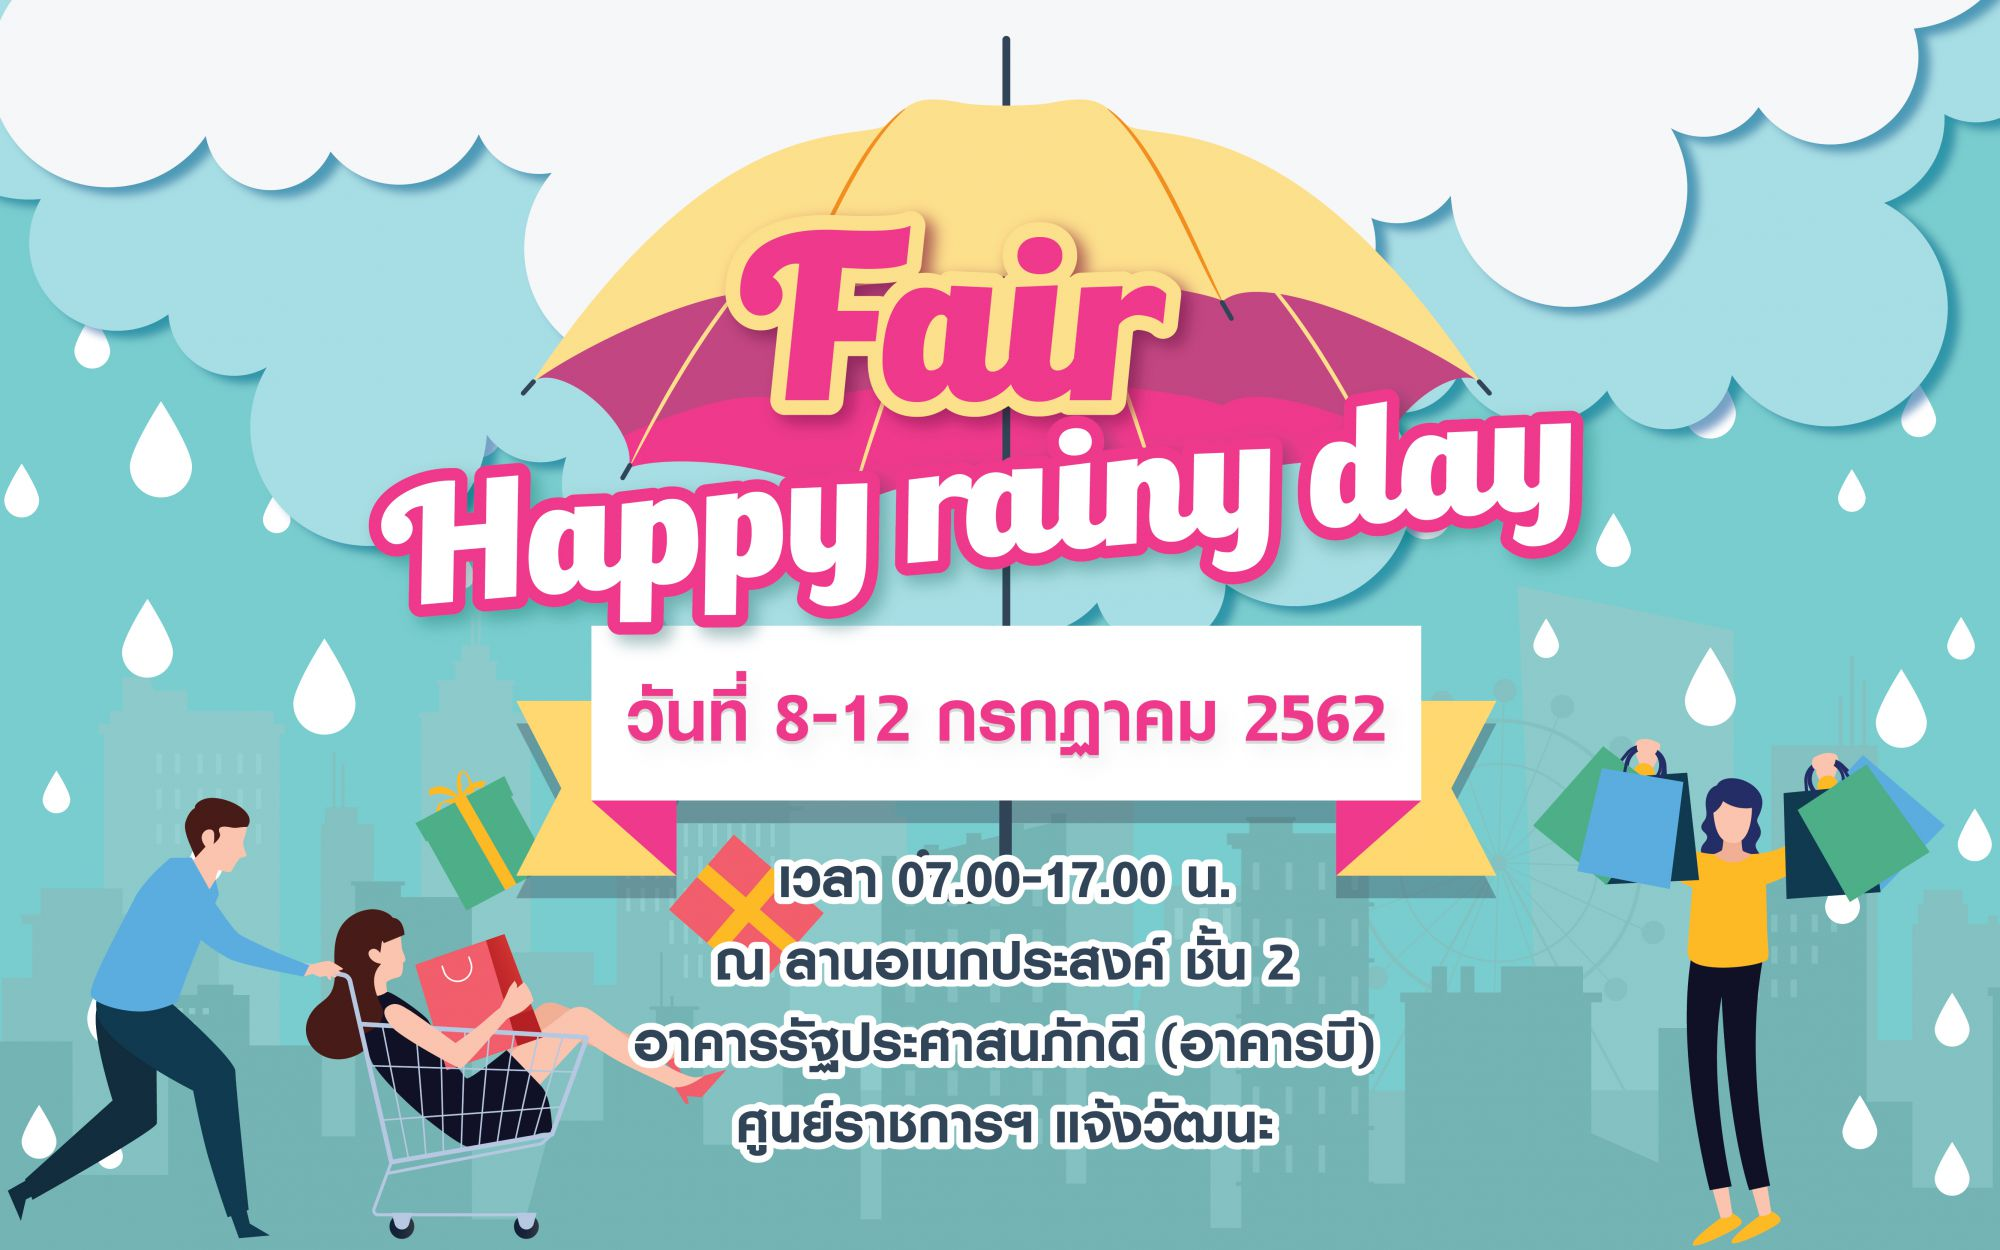 Fair Happy rainy day